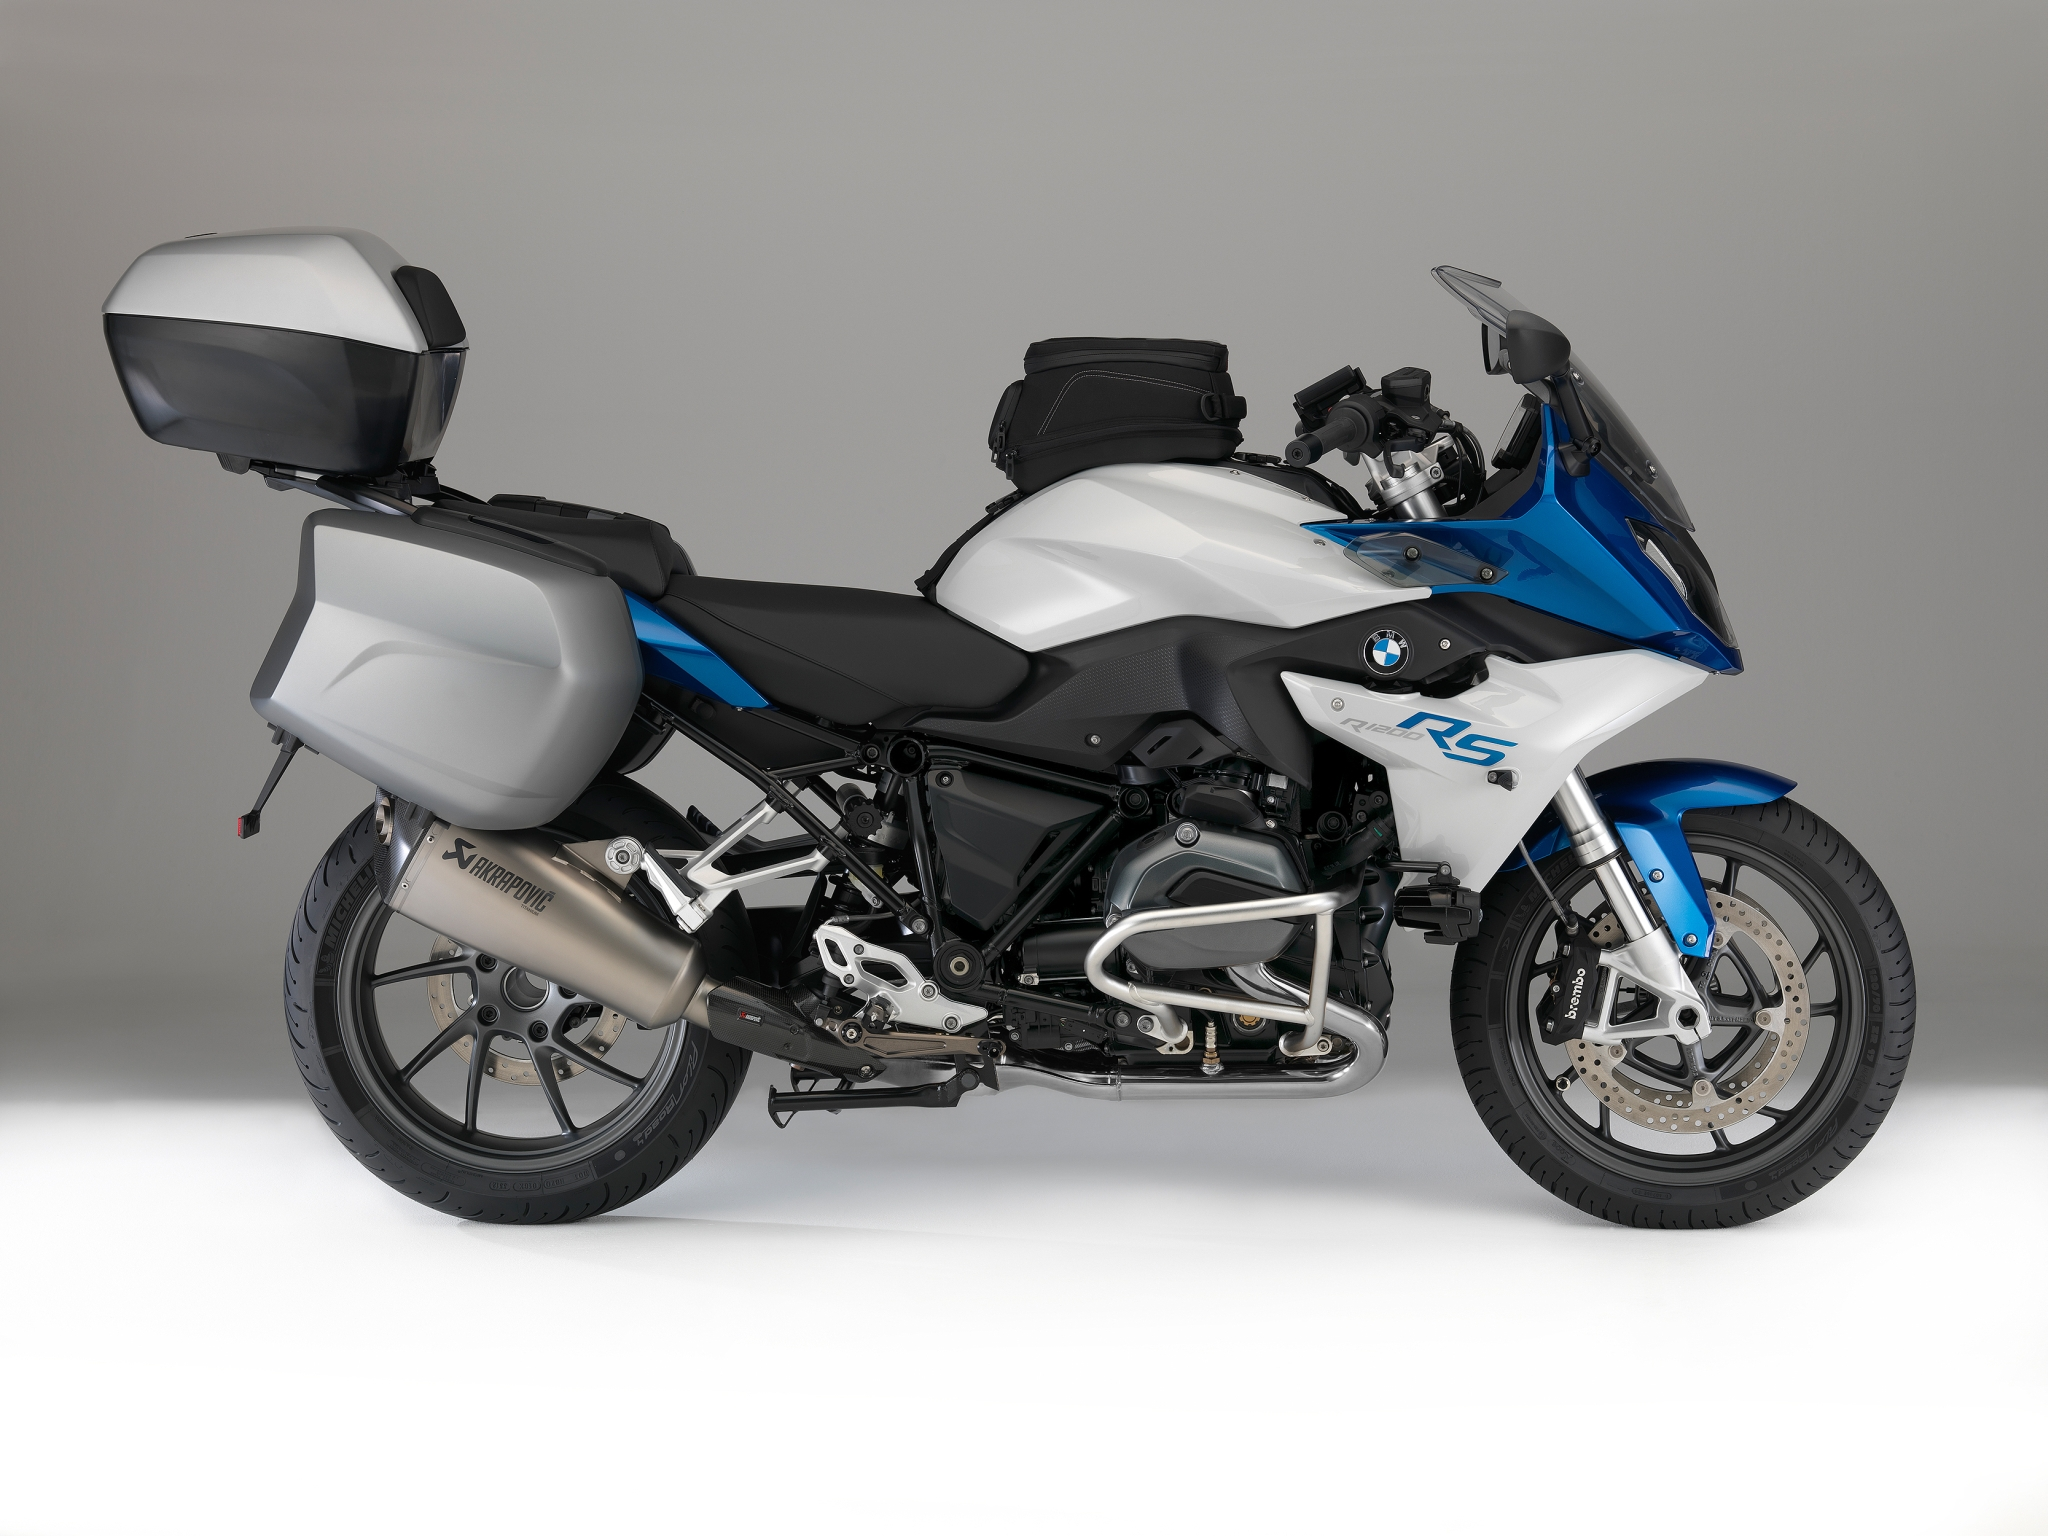 2015 bmw r1200rs brings back true sport touring vibe. Black Bedroom Furniture Sets. Home Design Ideas